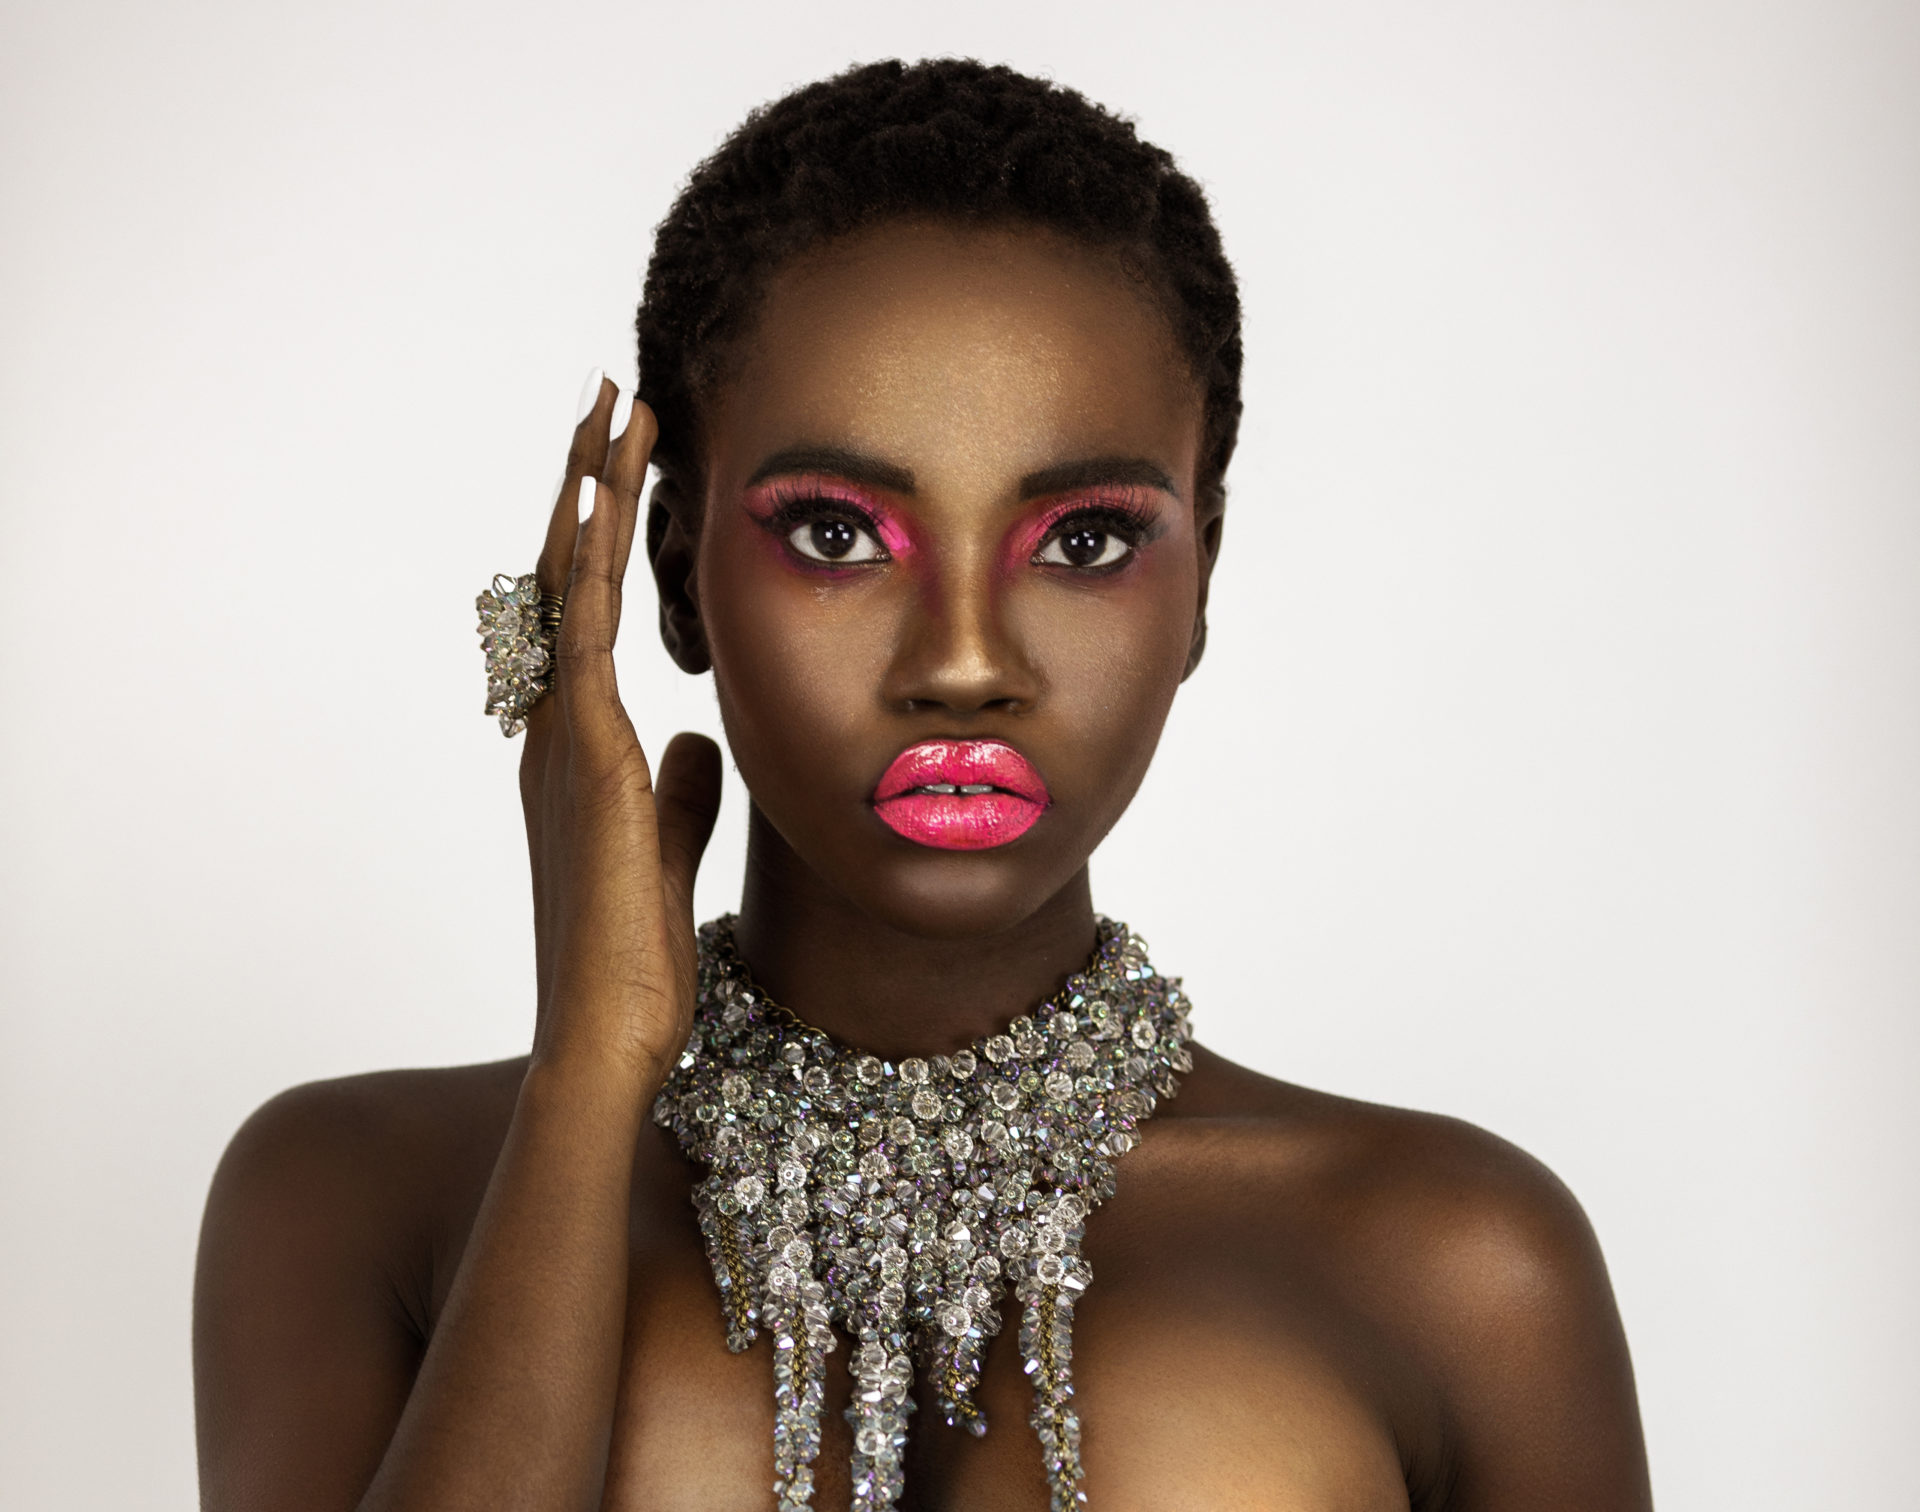 Clean & Serene Black Lady With Pink Lips & Diamond Jewelry